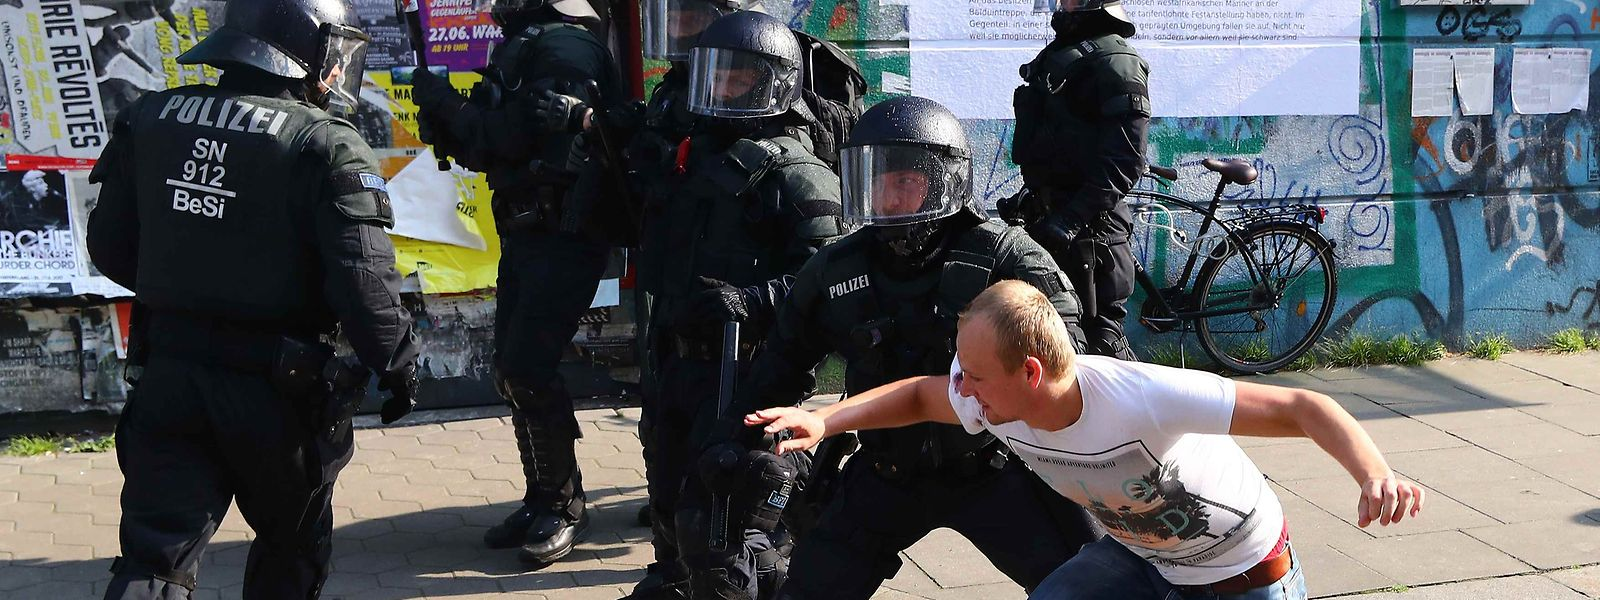 German riot police scuffle with protester during a demonstration at the G20 summit in Hamburg, Germany, July 7, 2017. REUTERS/Pawel Kopczynski